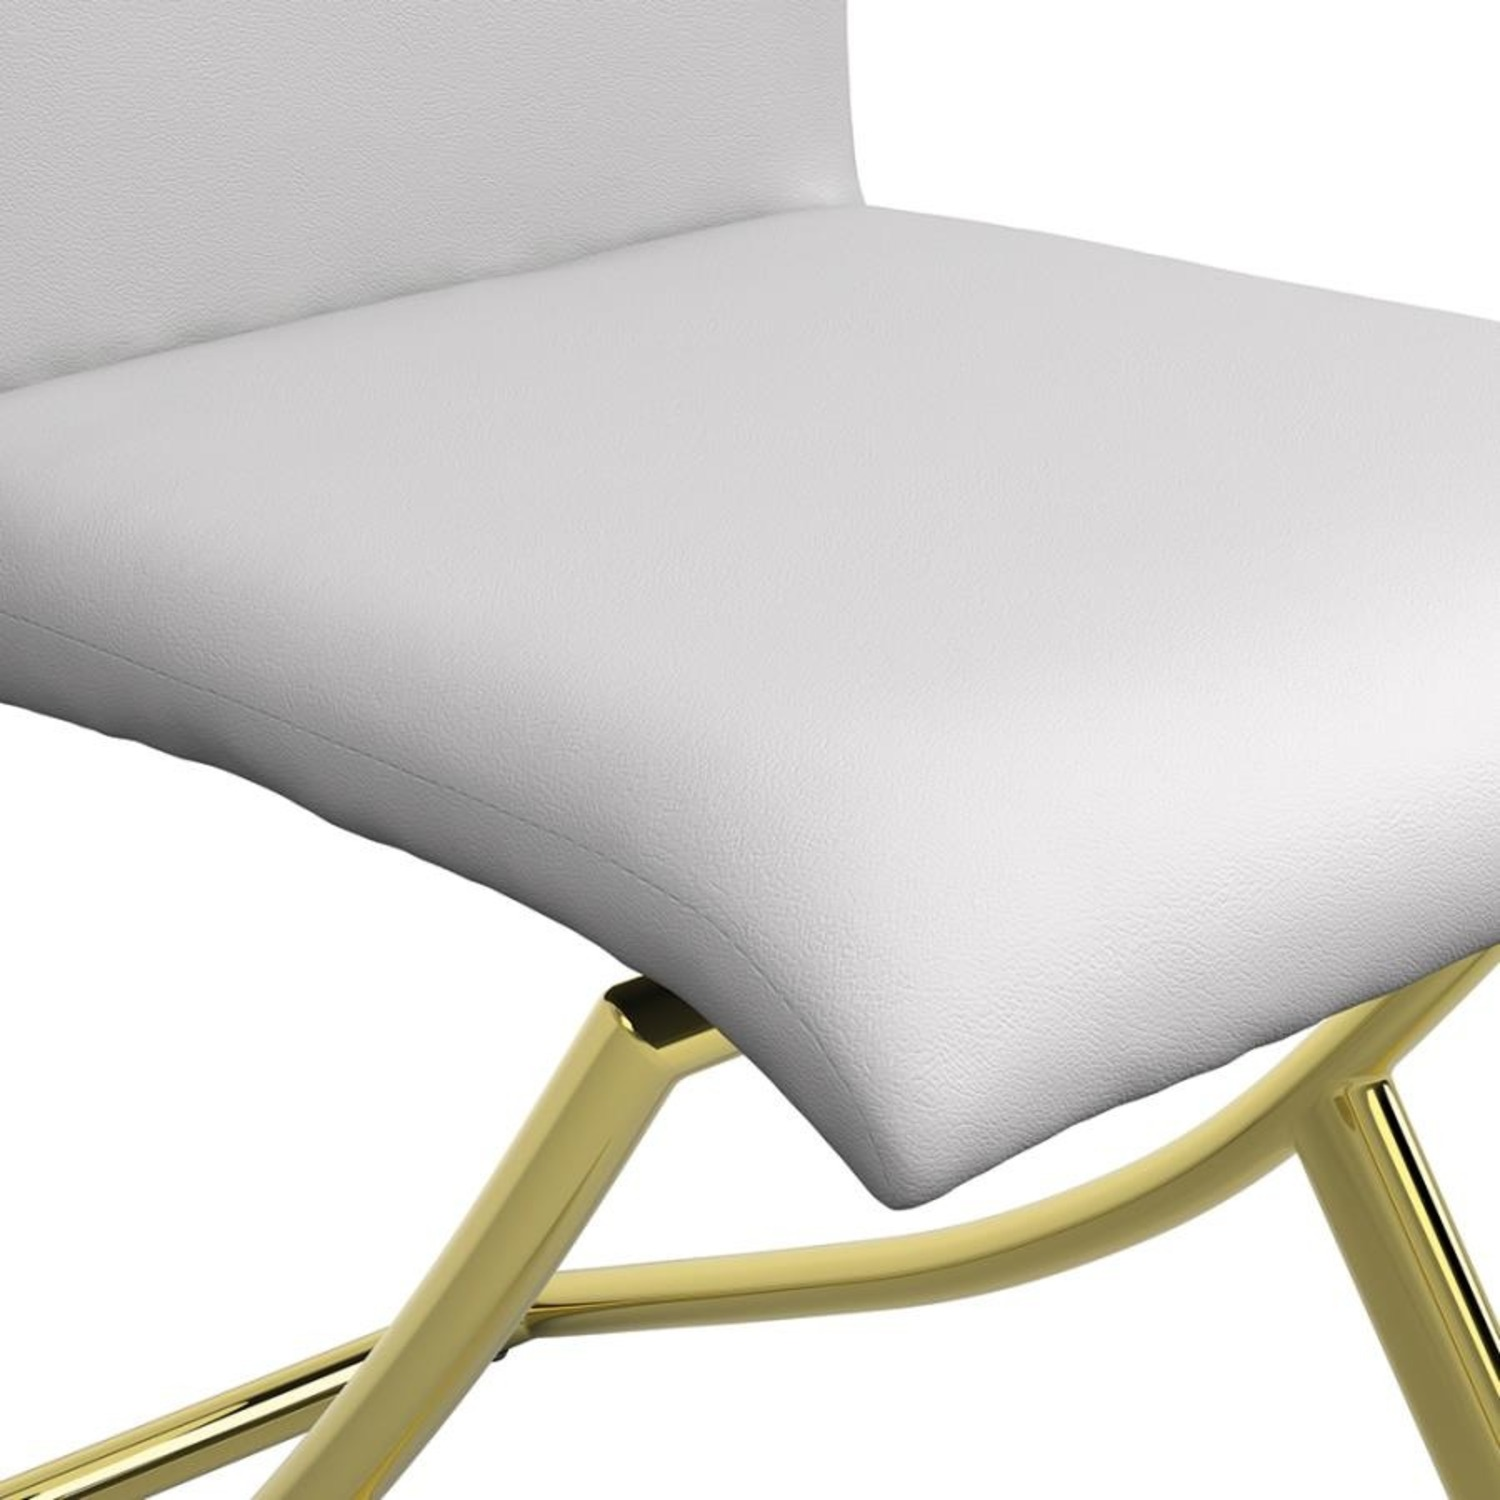 Side Chair In White W/ Crisscross Base Design - image-3